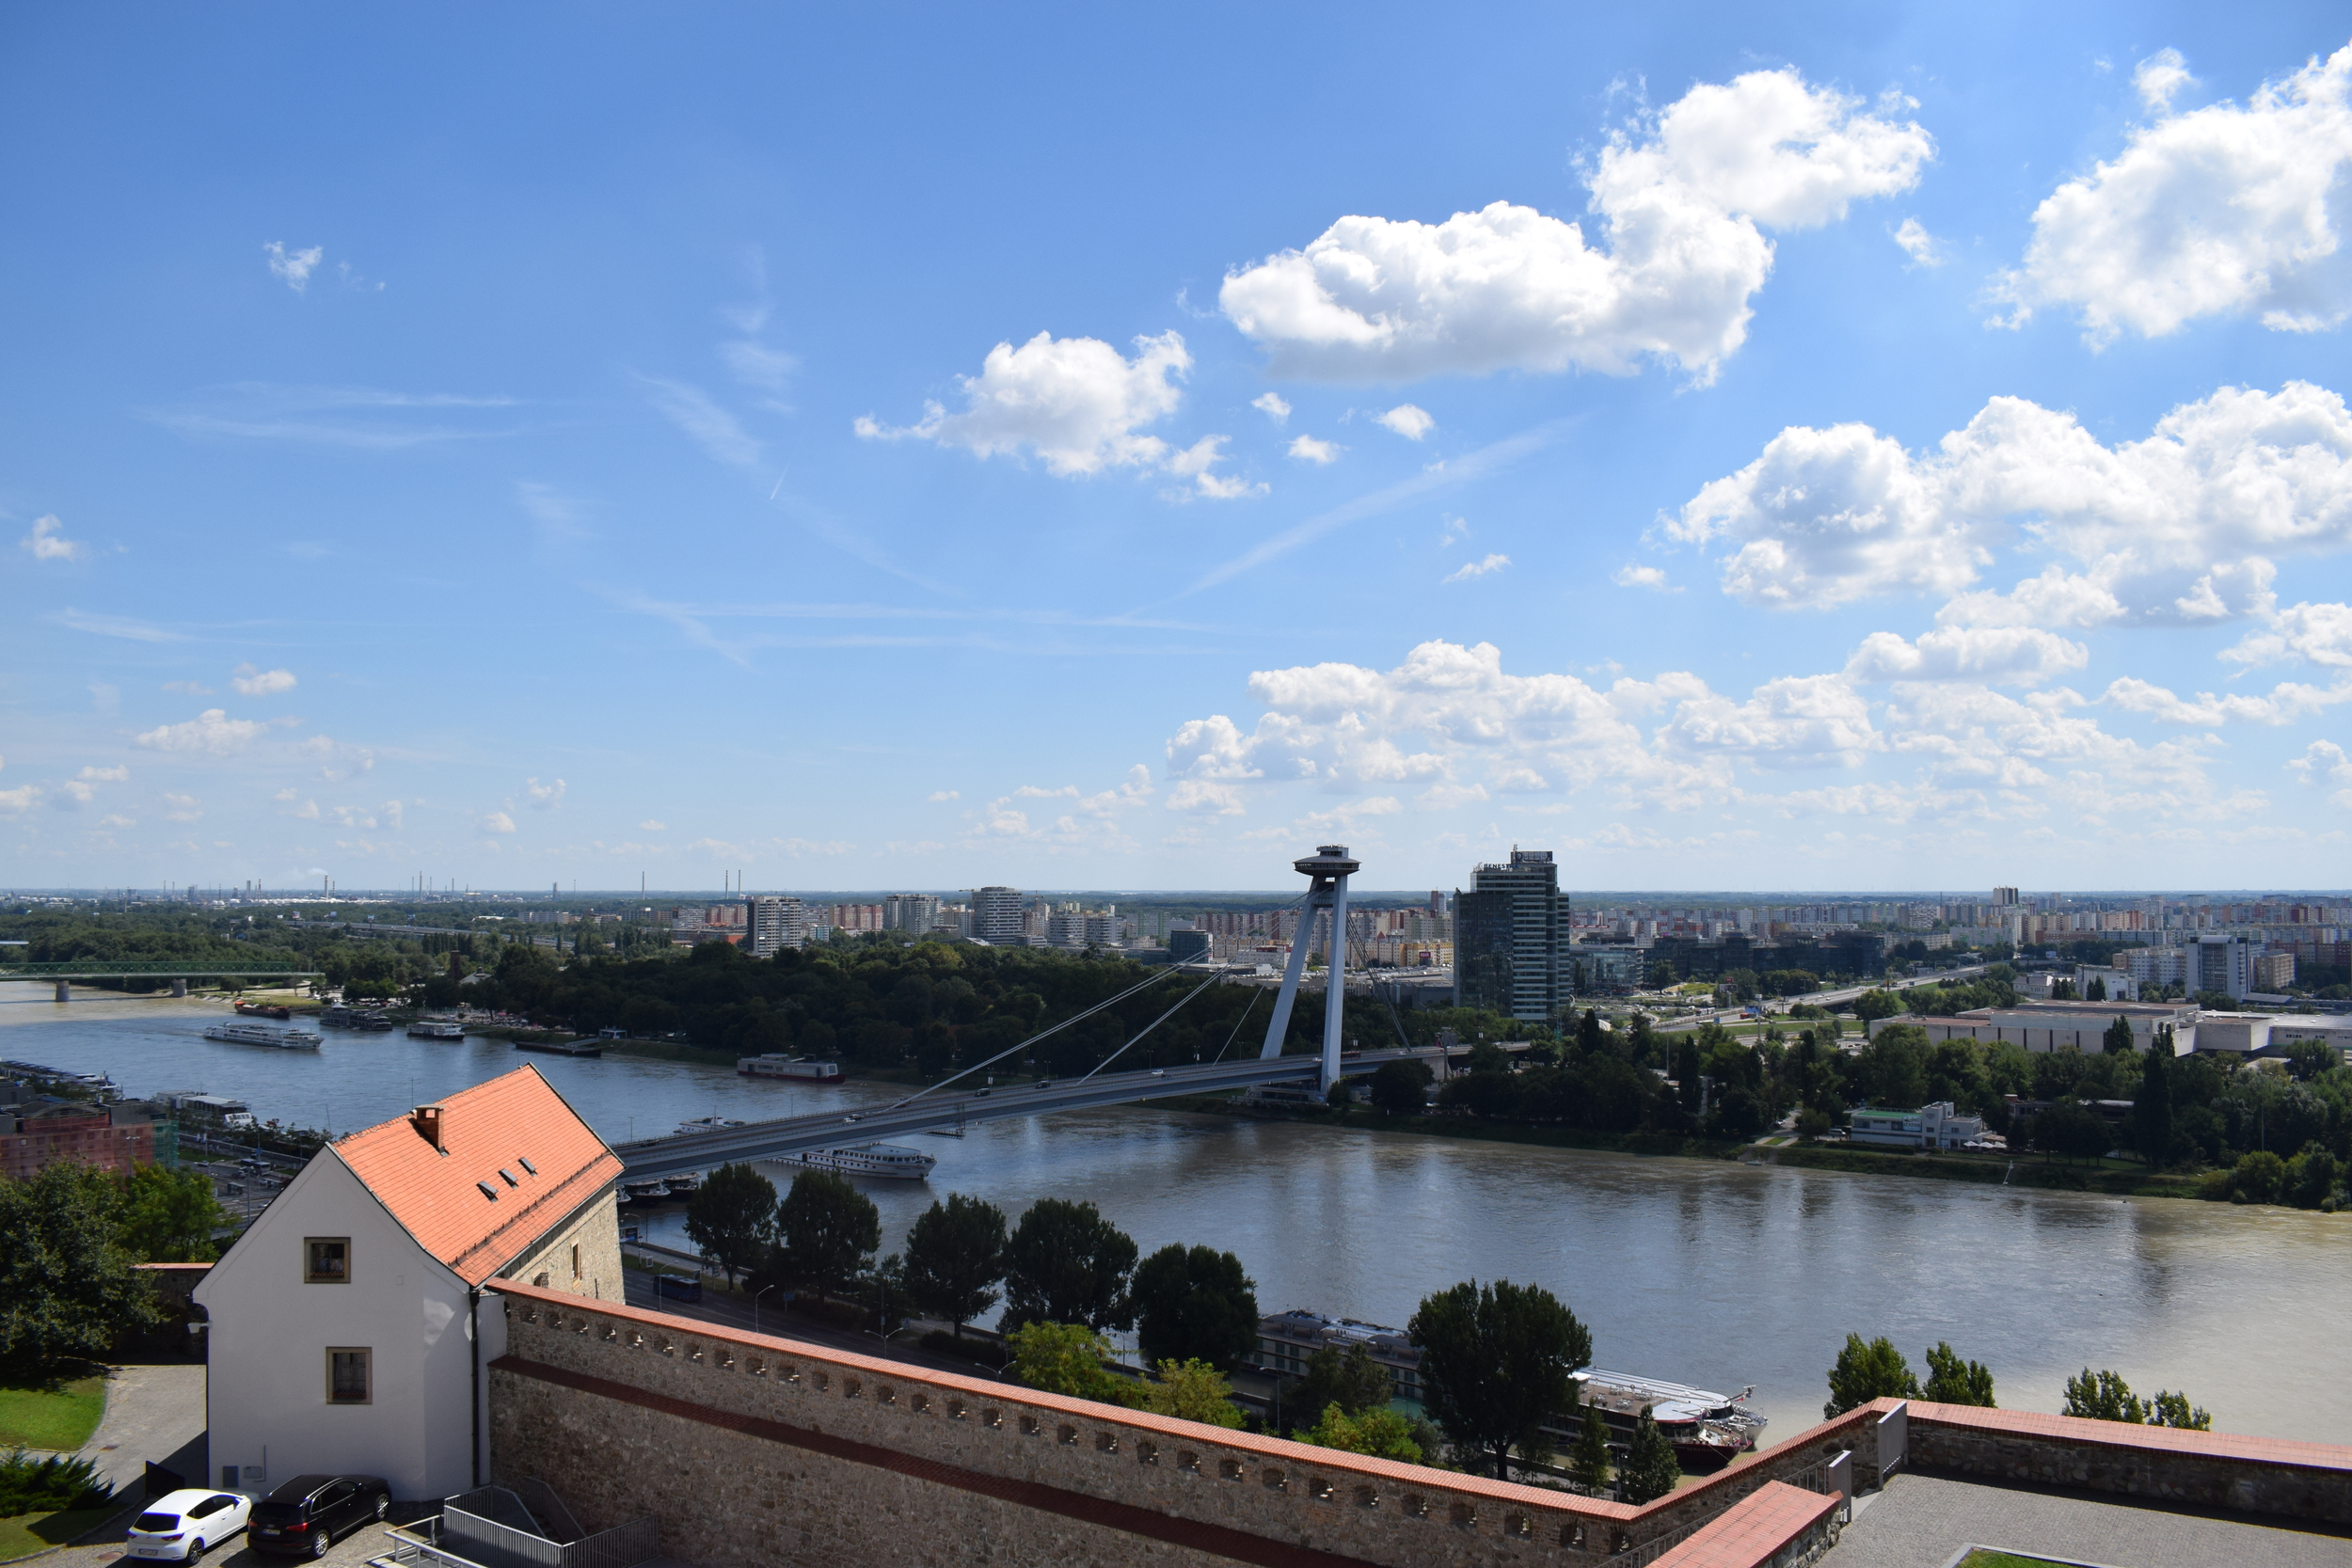 Looking down over Bratislava from the castle grounds.